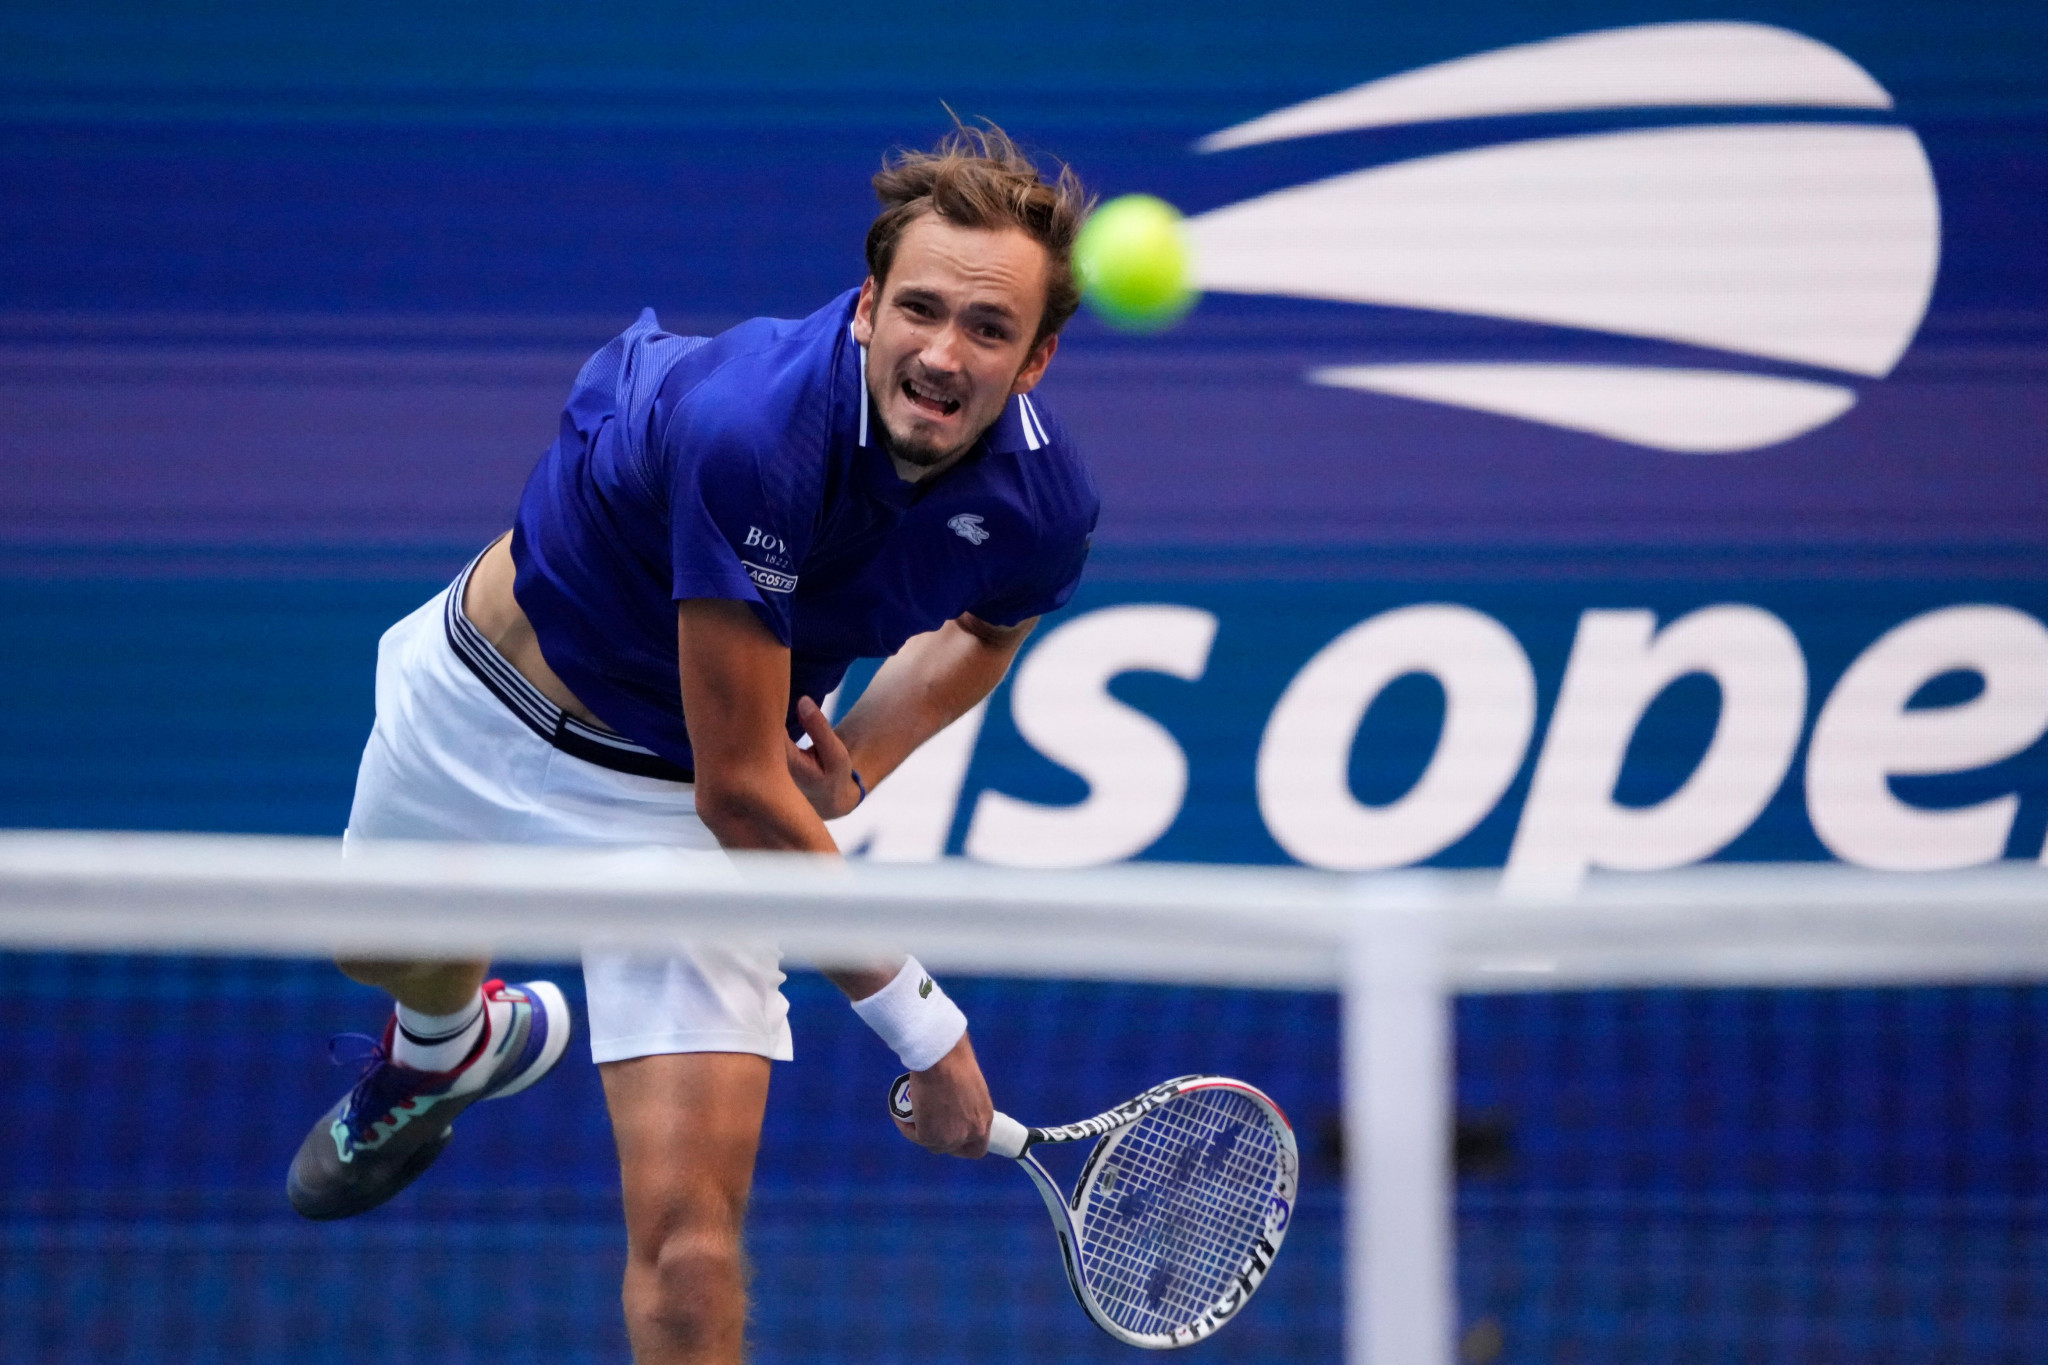 Daniil Medvedev has dropped only one set so far this tournament ©Getty Images